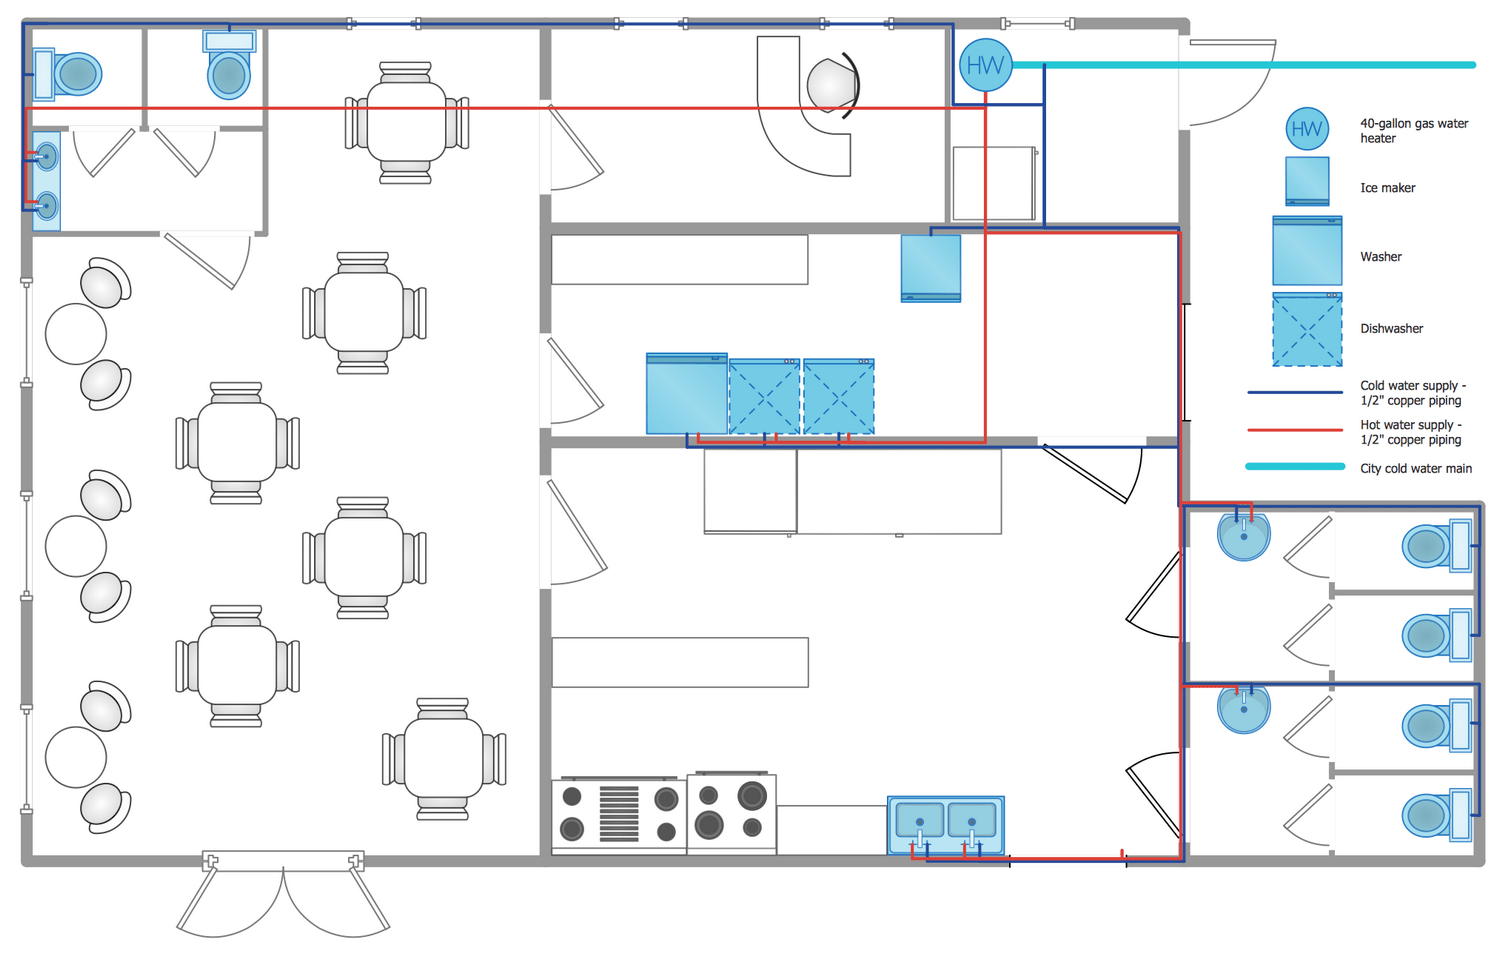 isometric piping diagram ceiling fan wiring diagrams with red wire plumbing and plans solution | conceptdraw.com